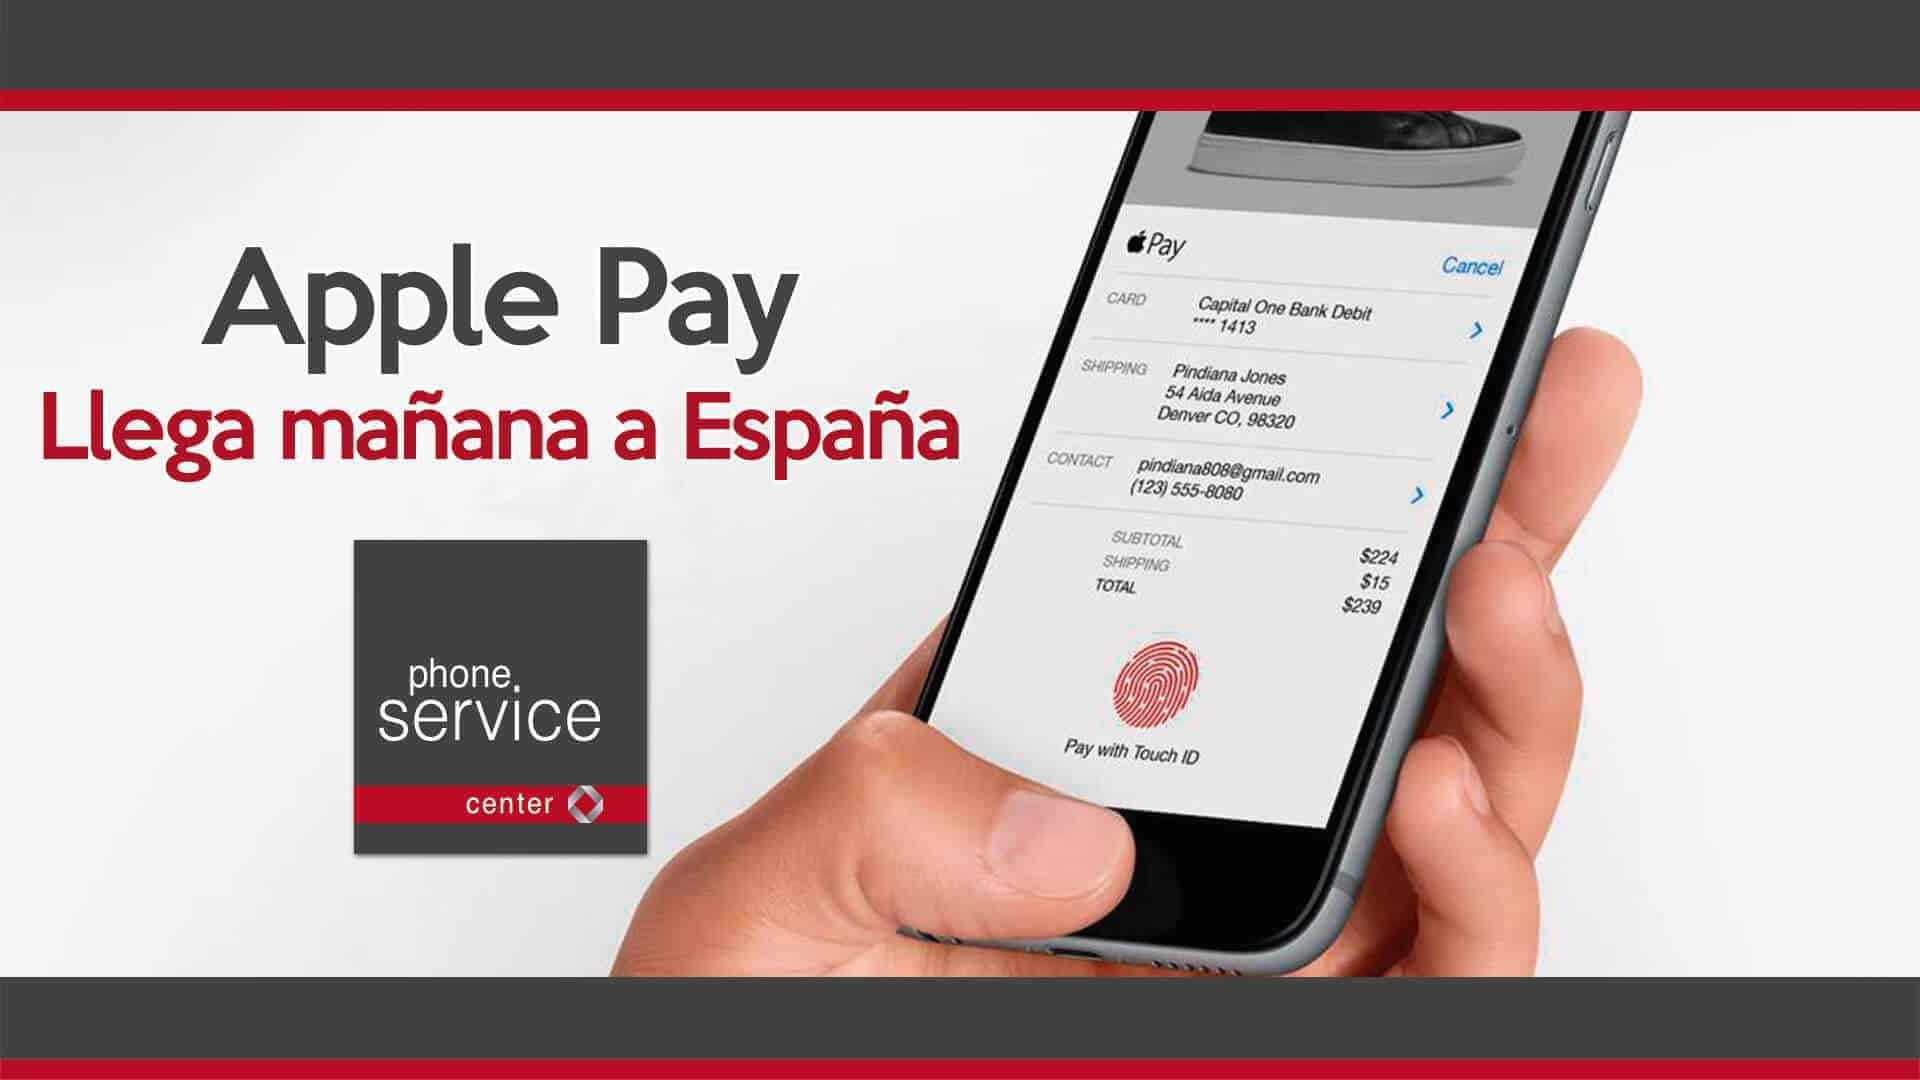 Apple Pay llega manana a Espana